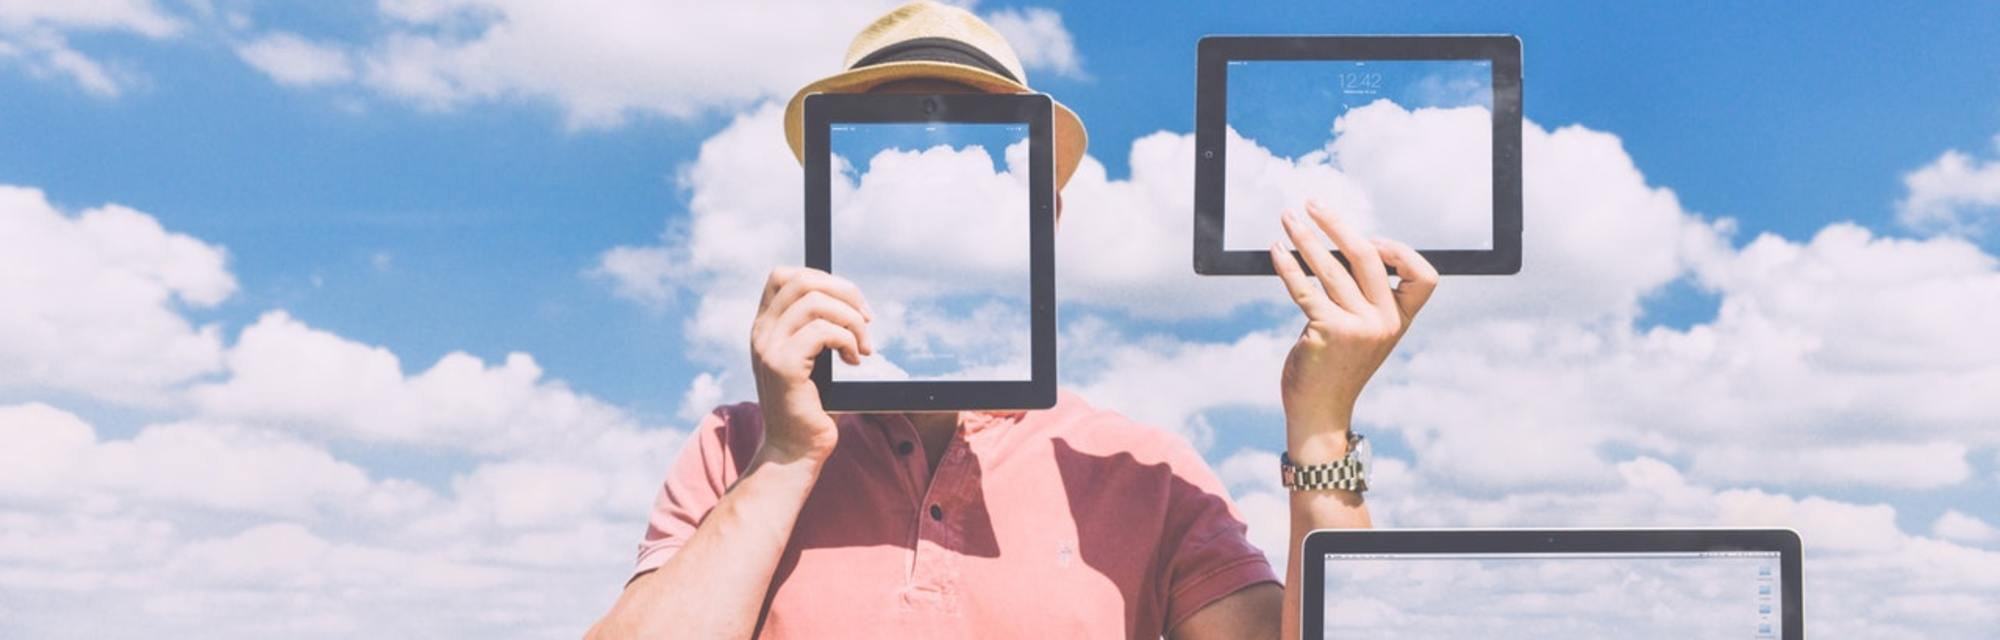 Developer holding ipads with clouds